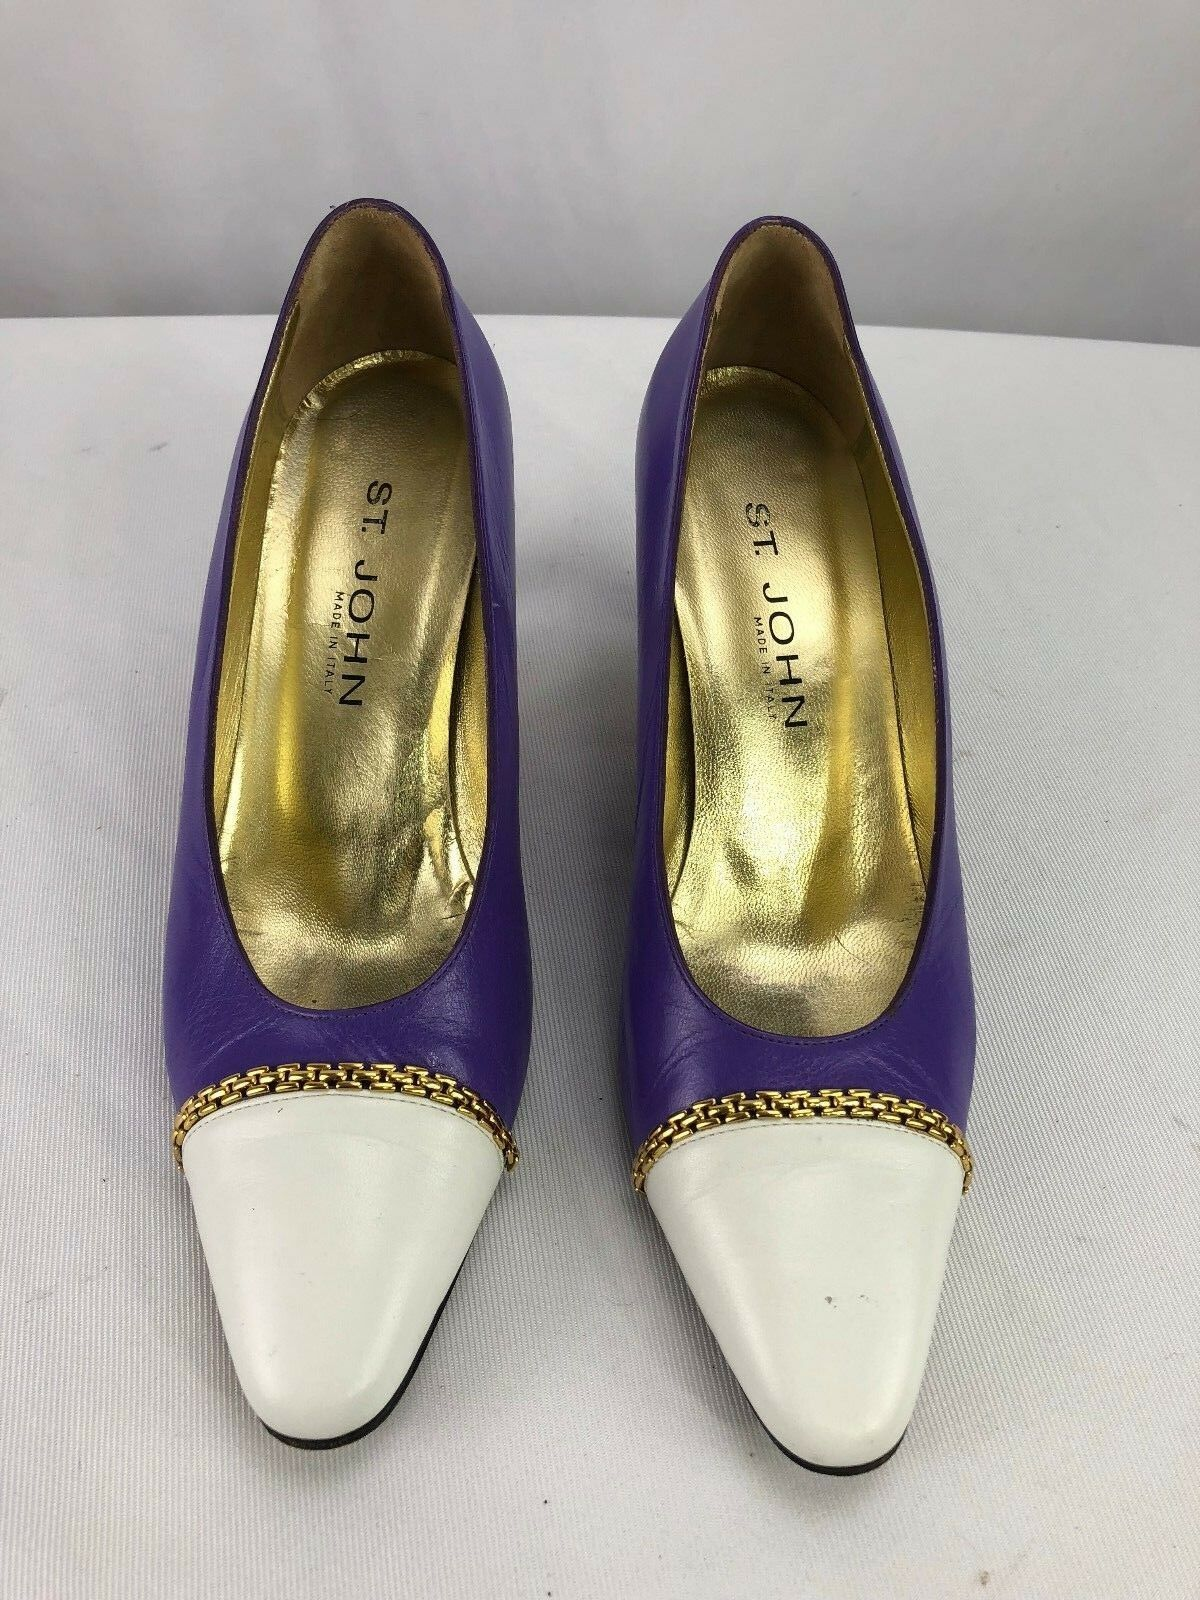 St John Purple Leather White Toe Classic Shoes Heels Size 8.5 AA